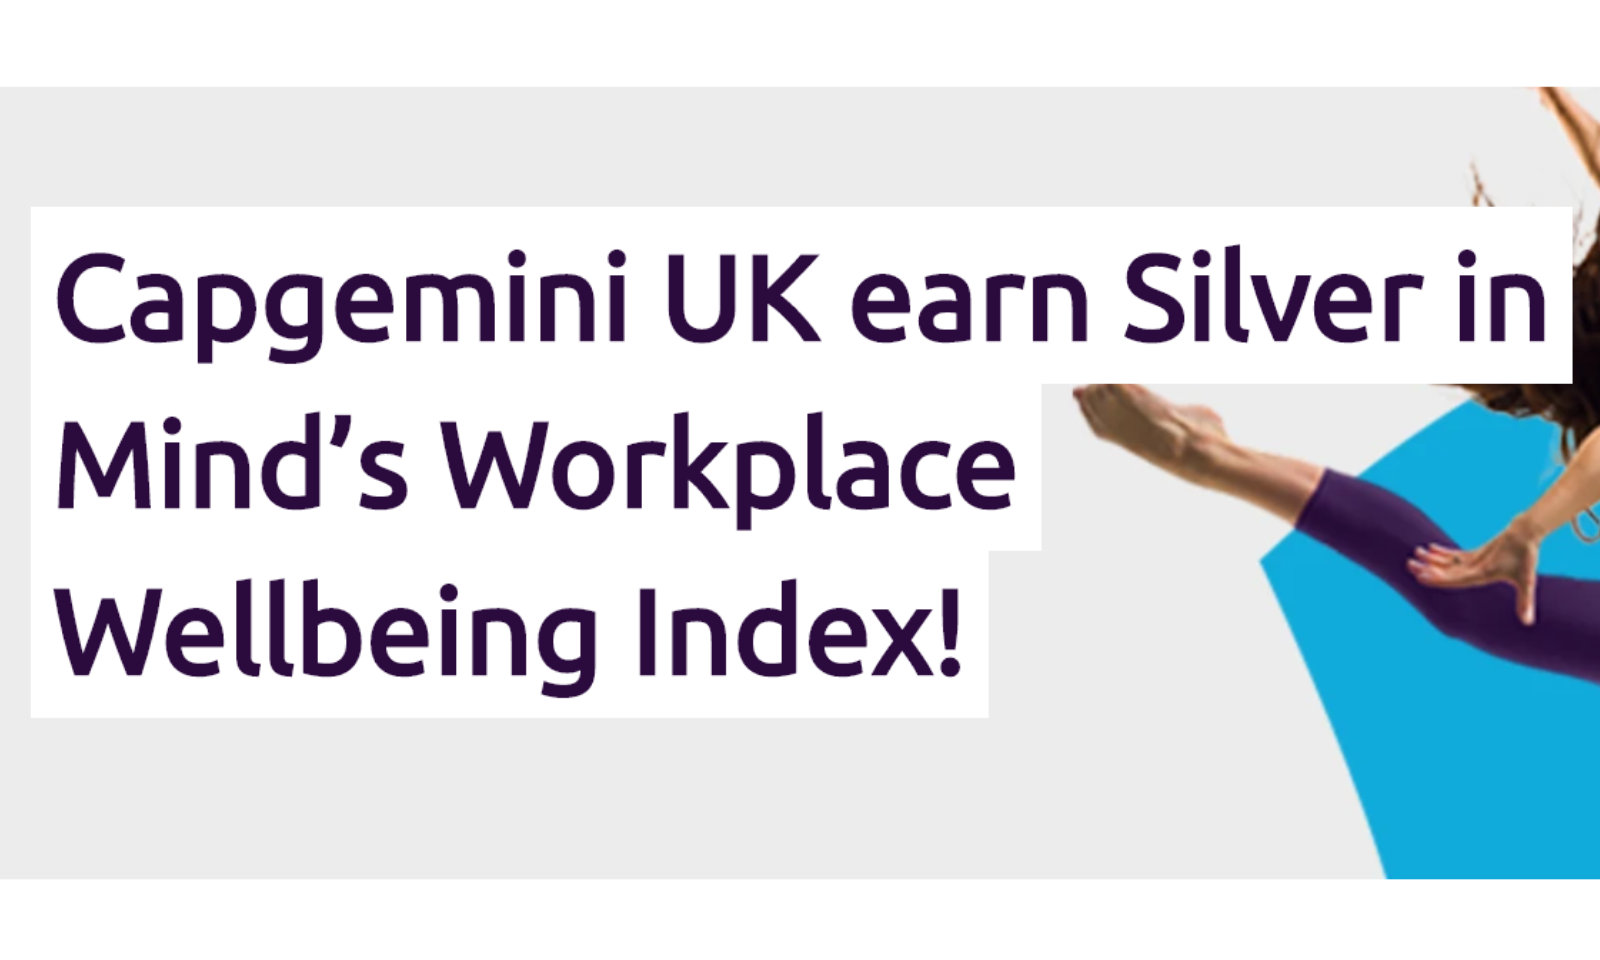 Capgemini UK earn Silver in Mind's Workplace Wellbeing Index!